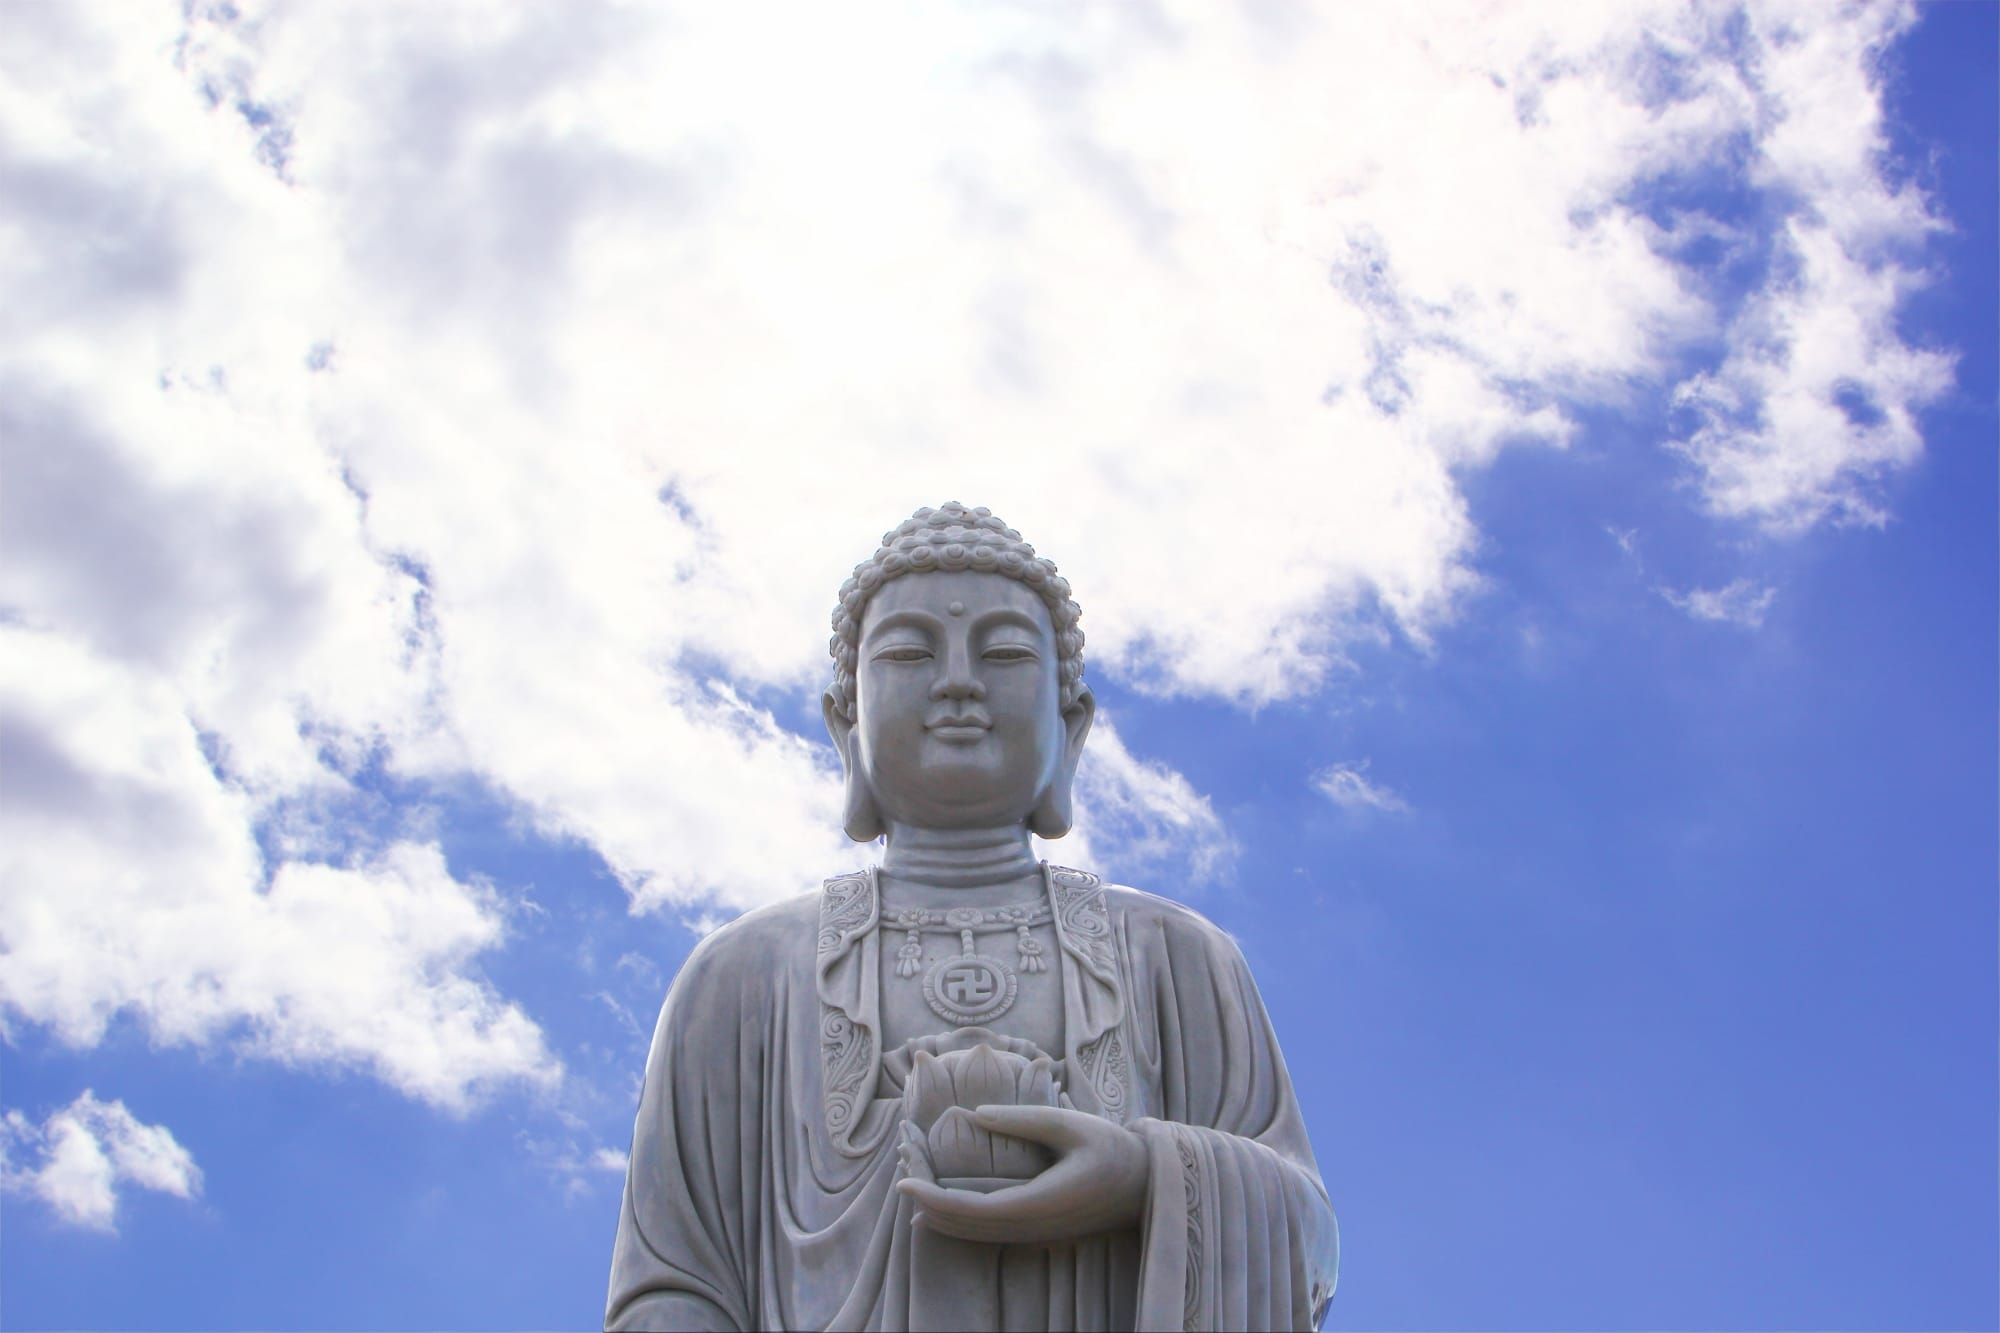 The new Buddha statue at Enfield Memorial Park.